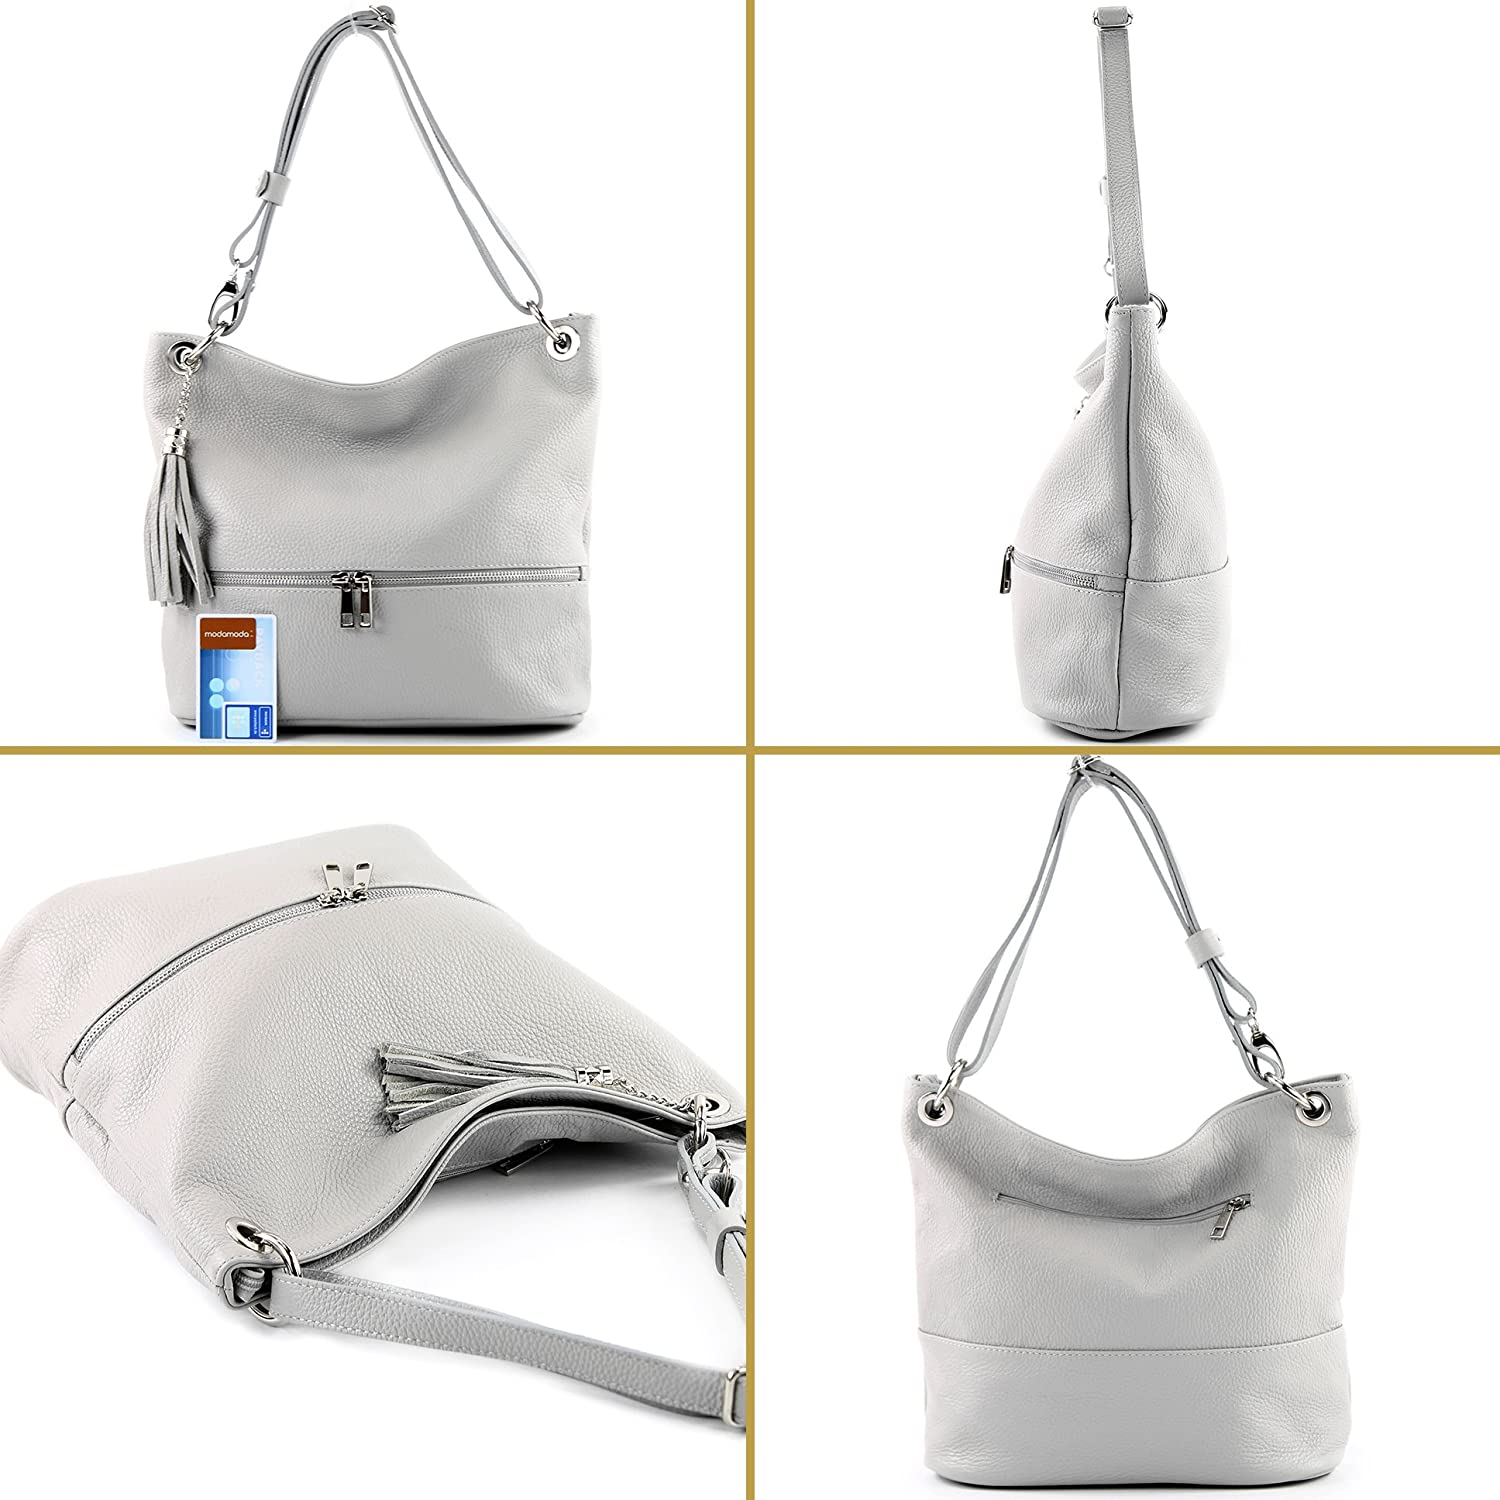 Modamoda de - ital. Leather bag Shoulder bag Shoulder bag Leather bag T143 White Black